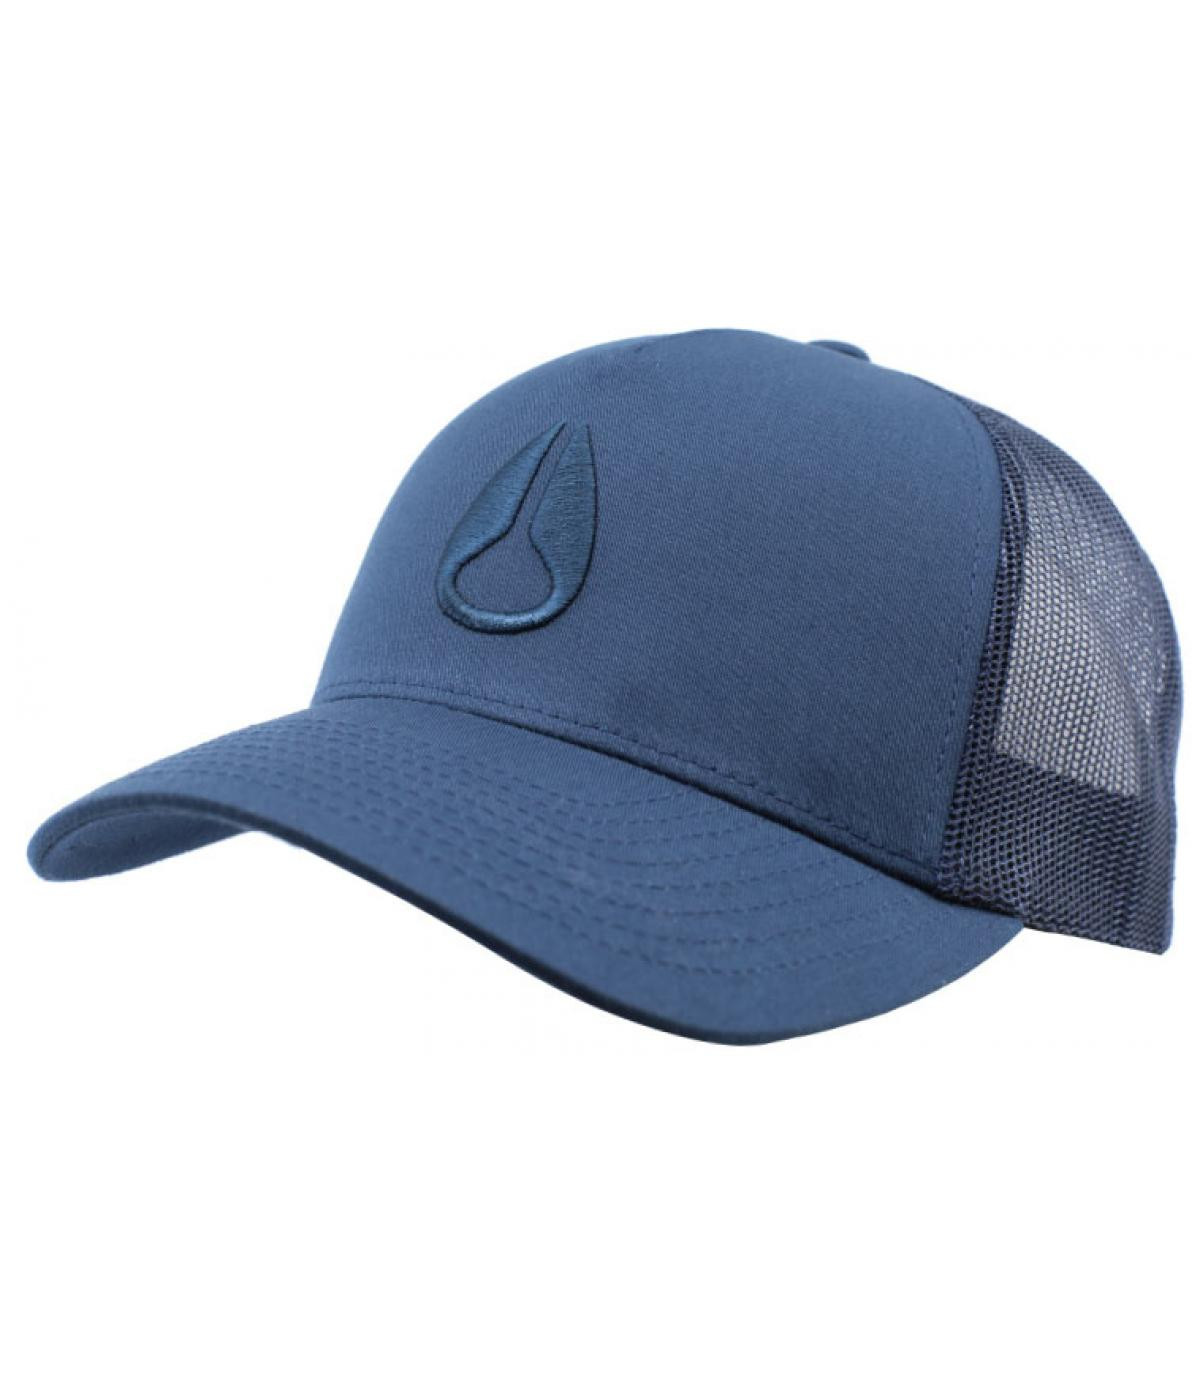 95432a553ad Nixon navy curved trucker - Iconed all navy by Nixon. Headict